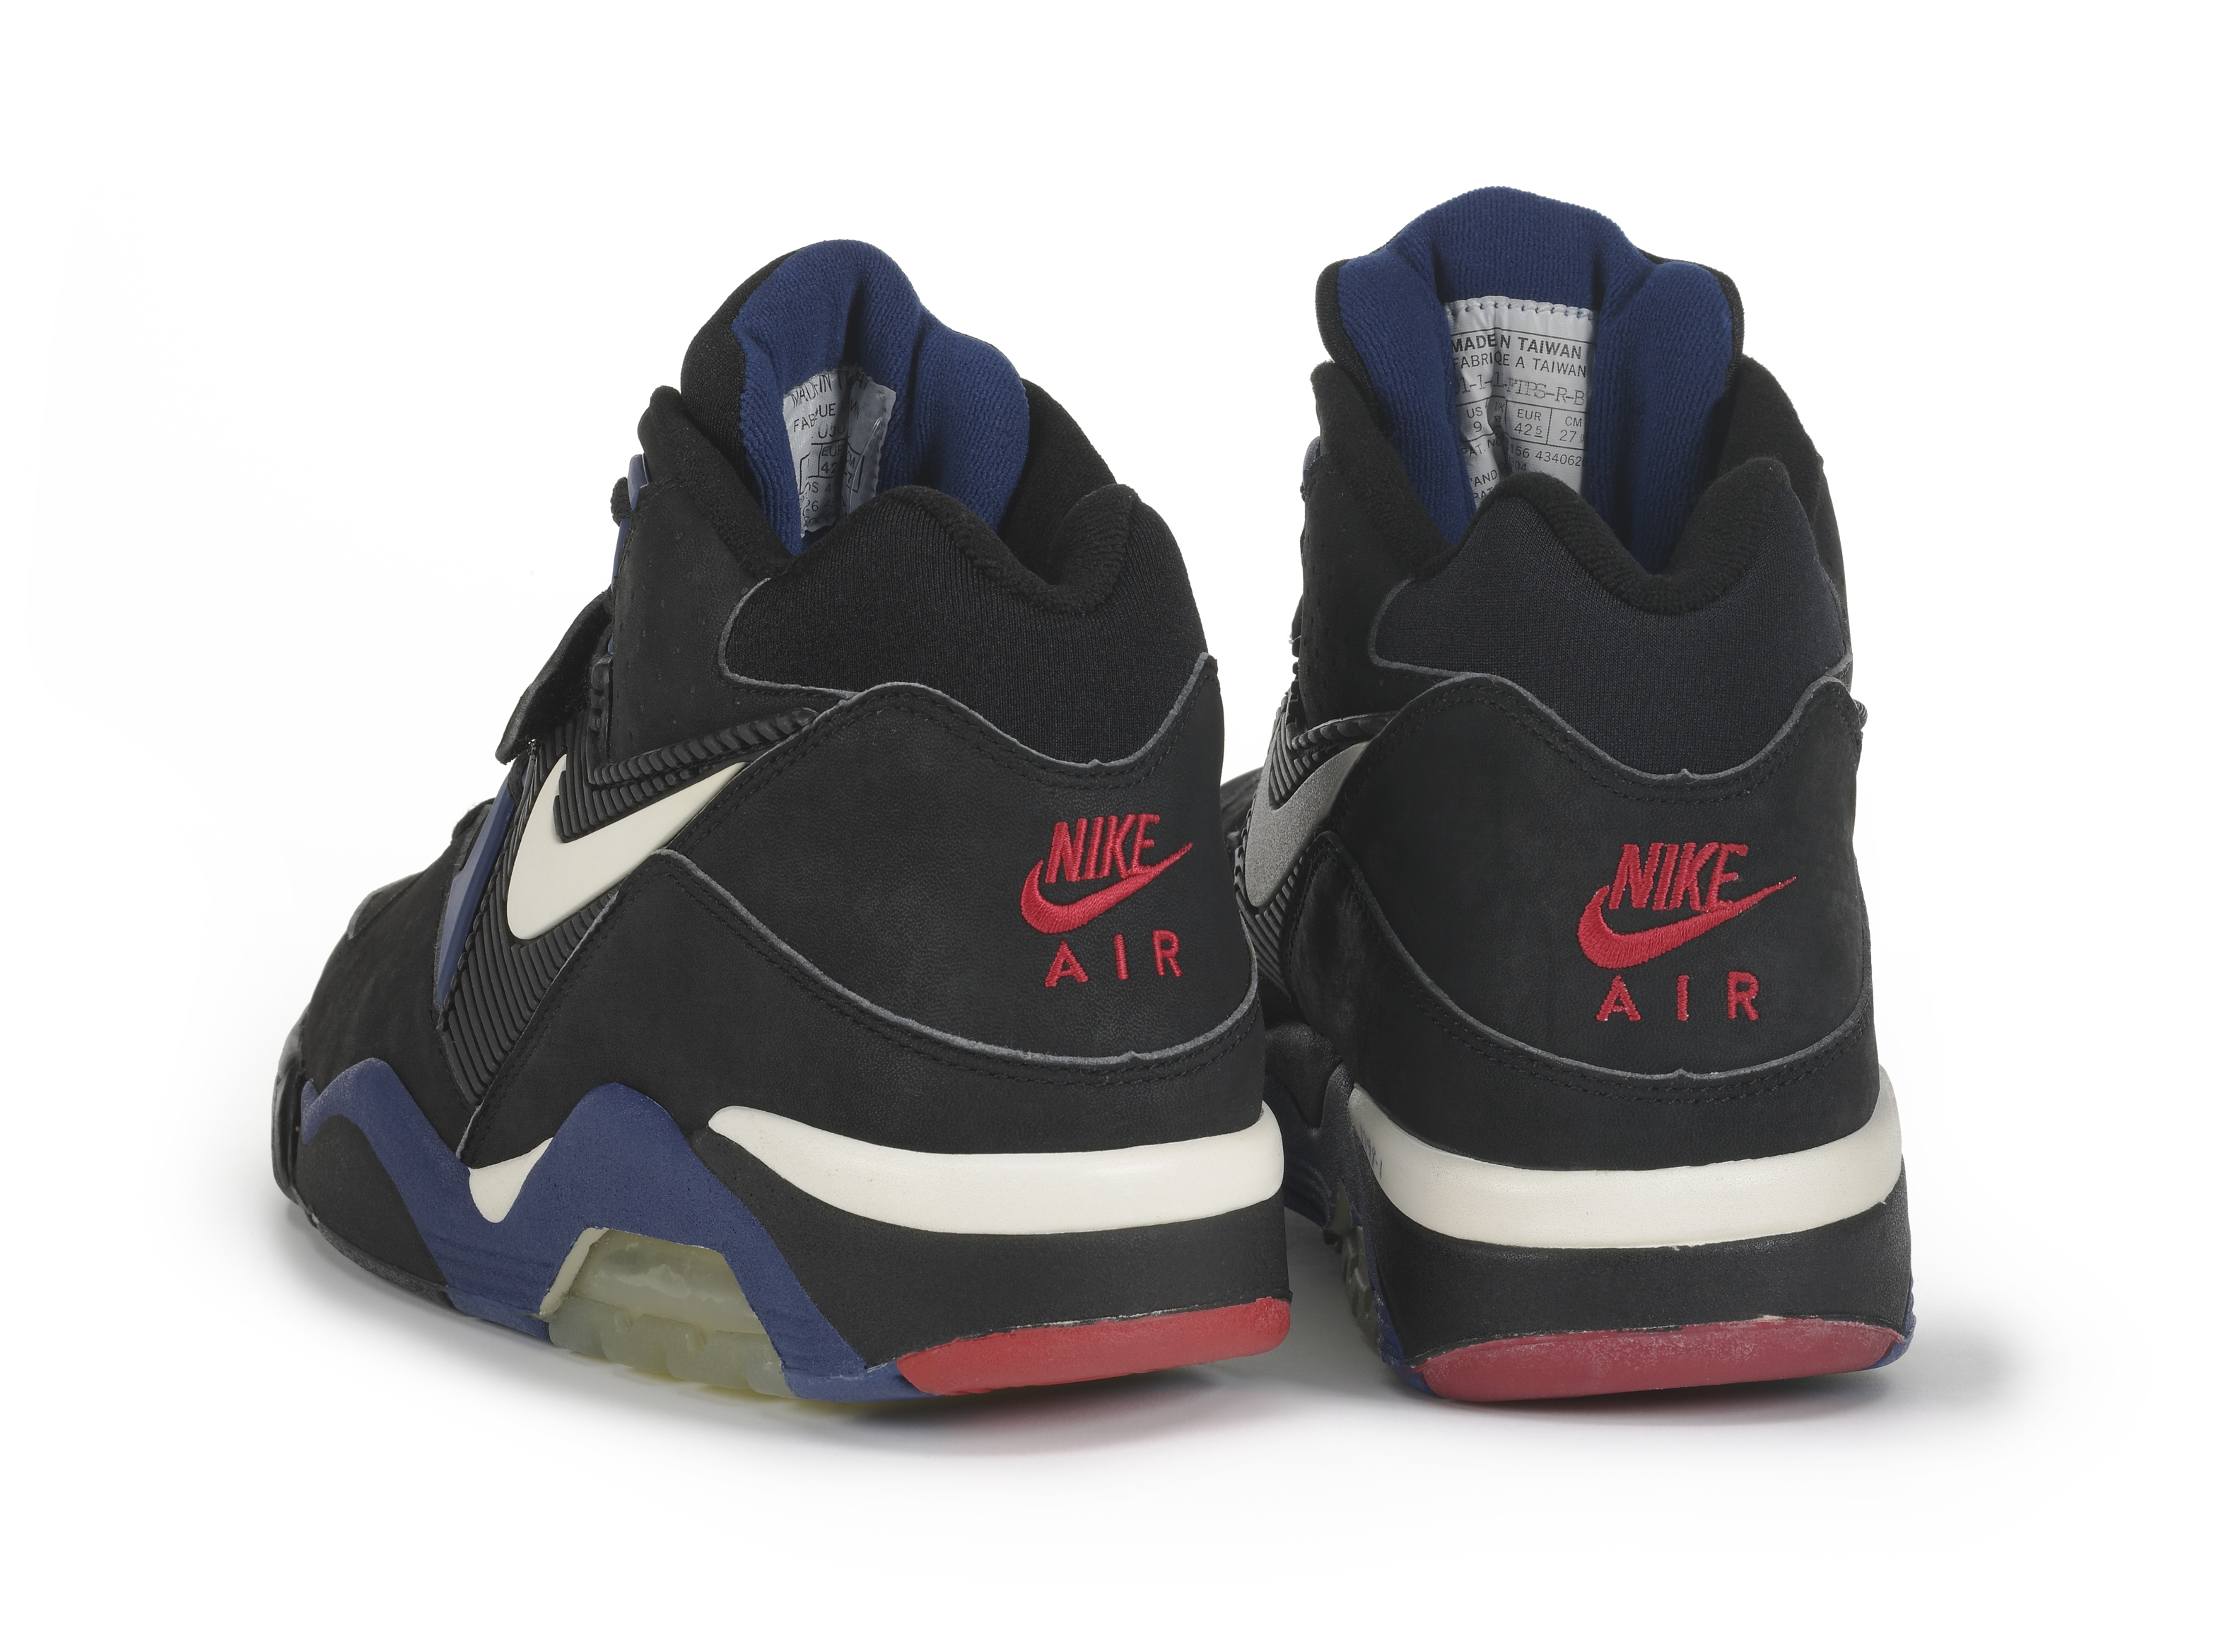 Nike Air Force 180 Low. Download Image: LO � HI